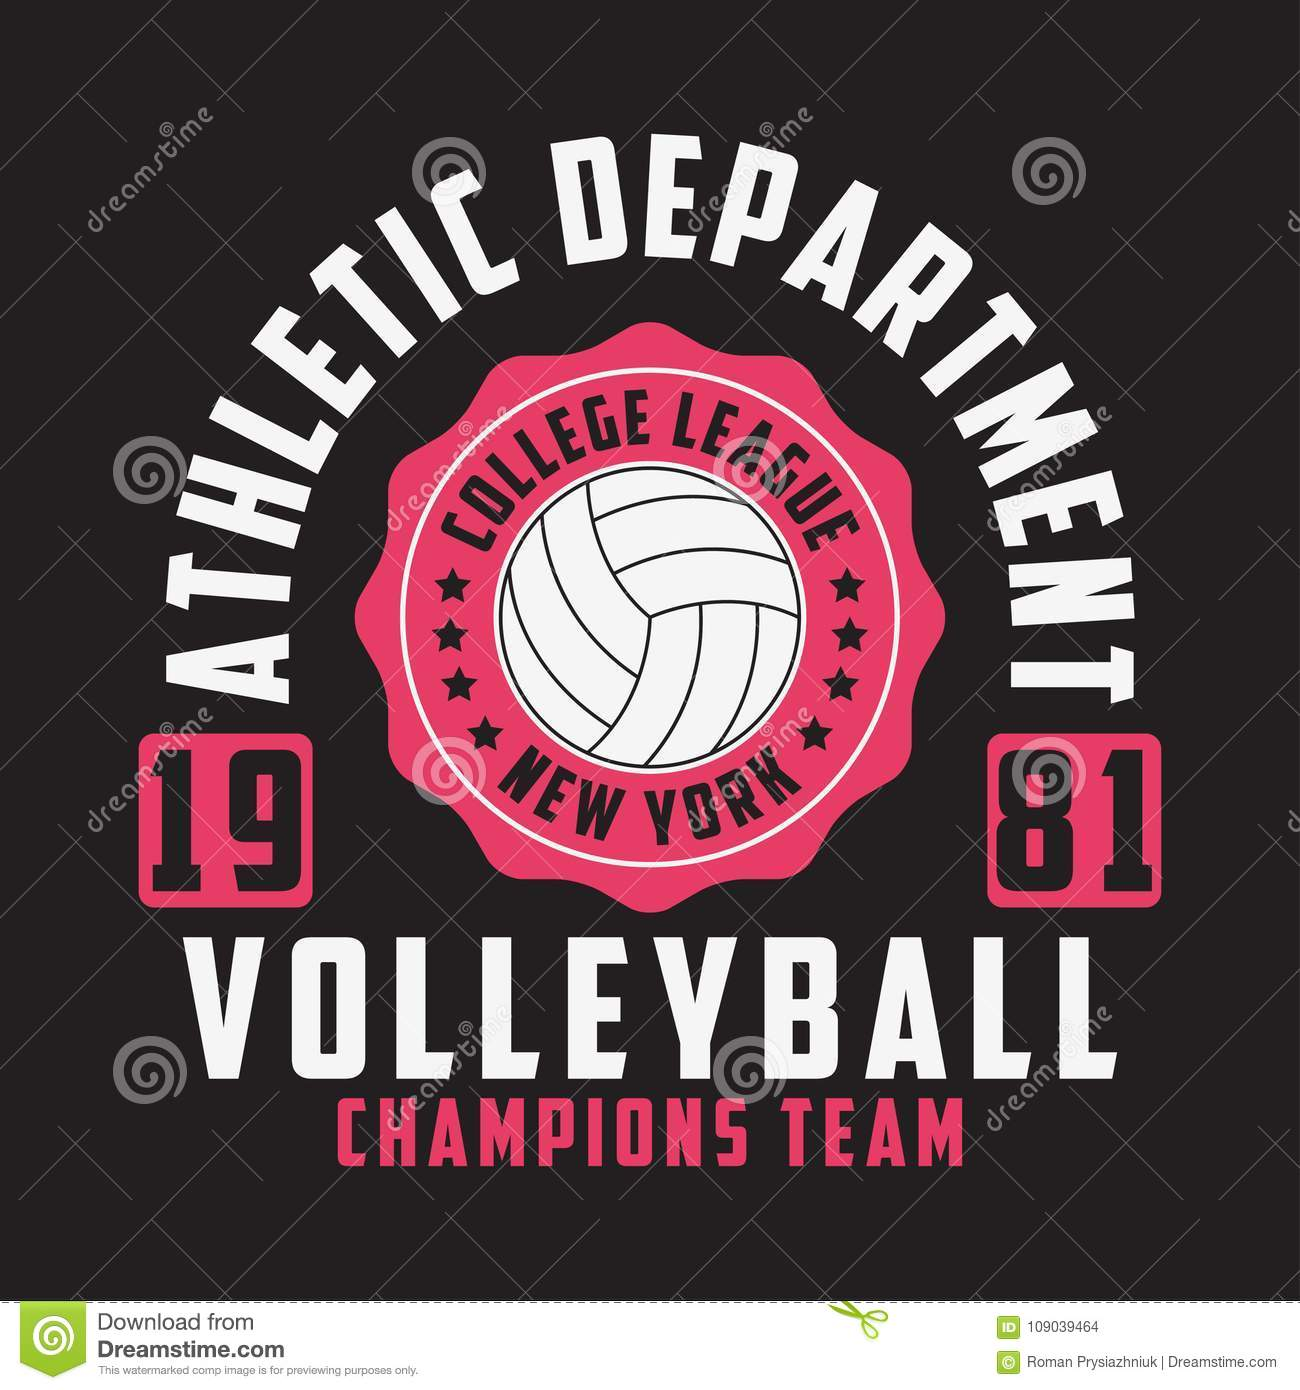 Volleyball New York Print For Apparel With Ball Typography Emblem